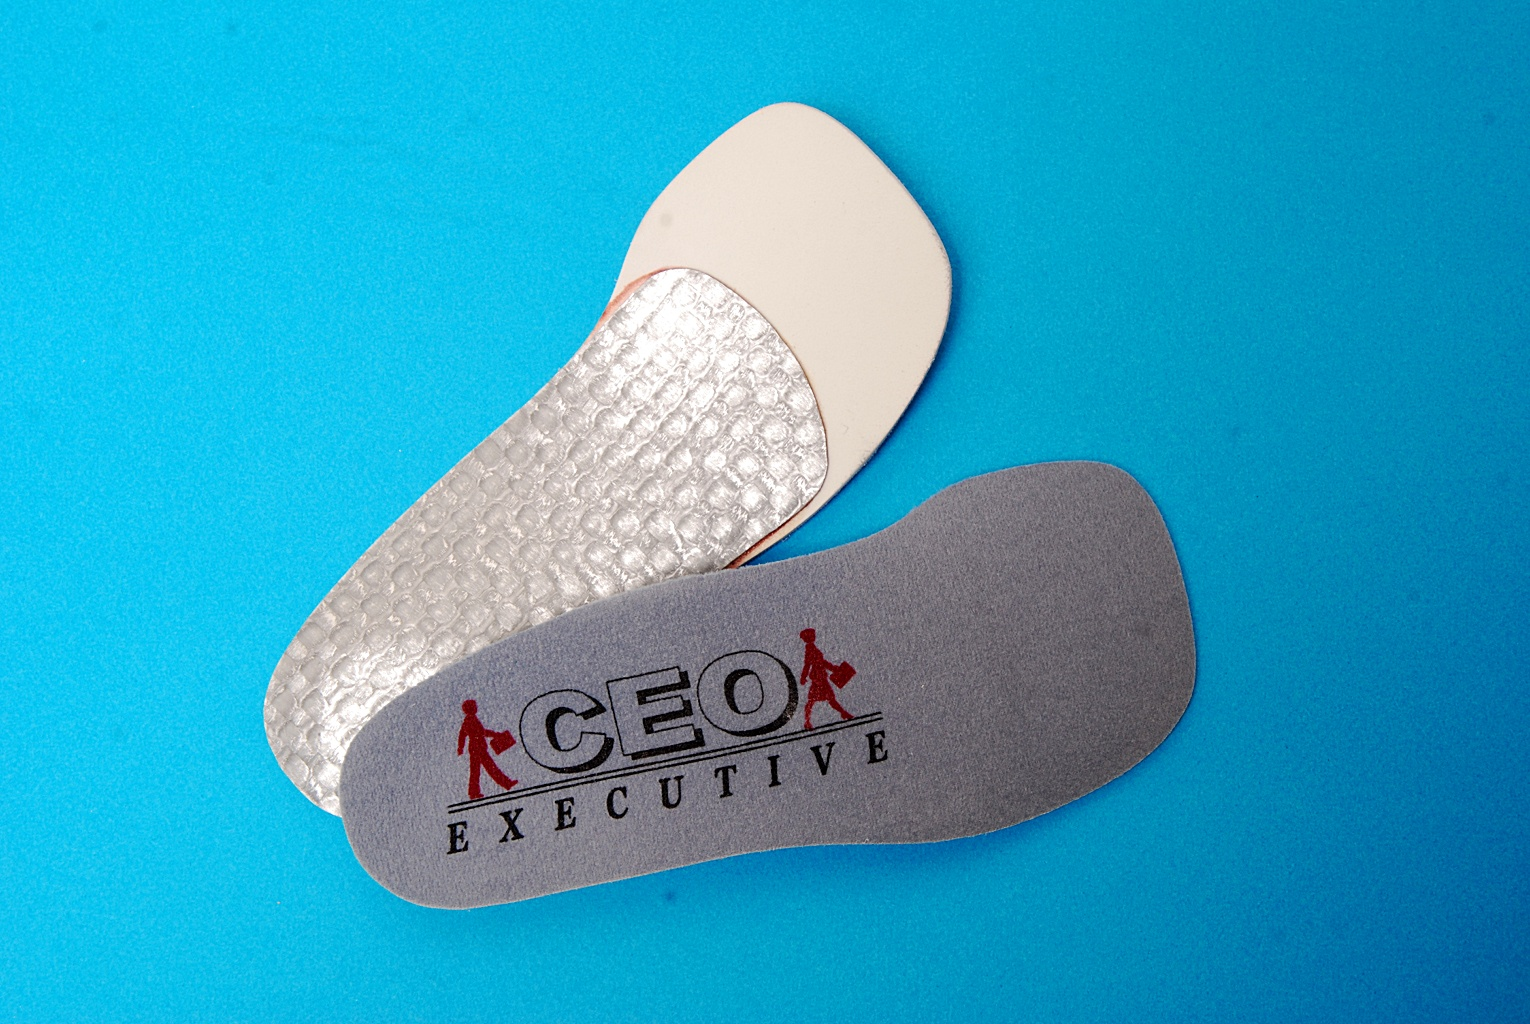 CEO Dress Orthotics